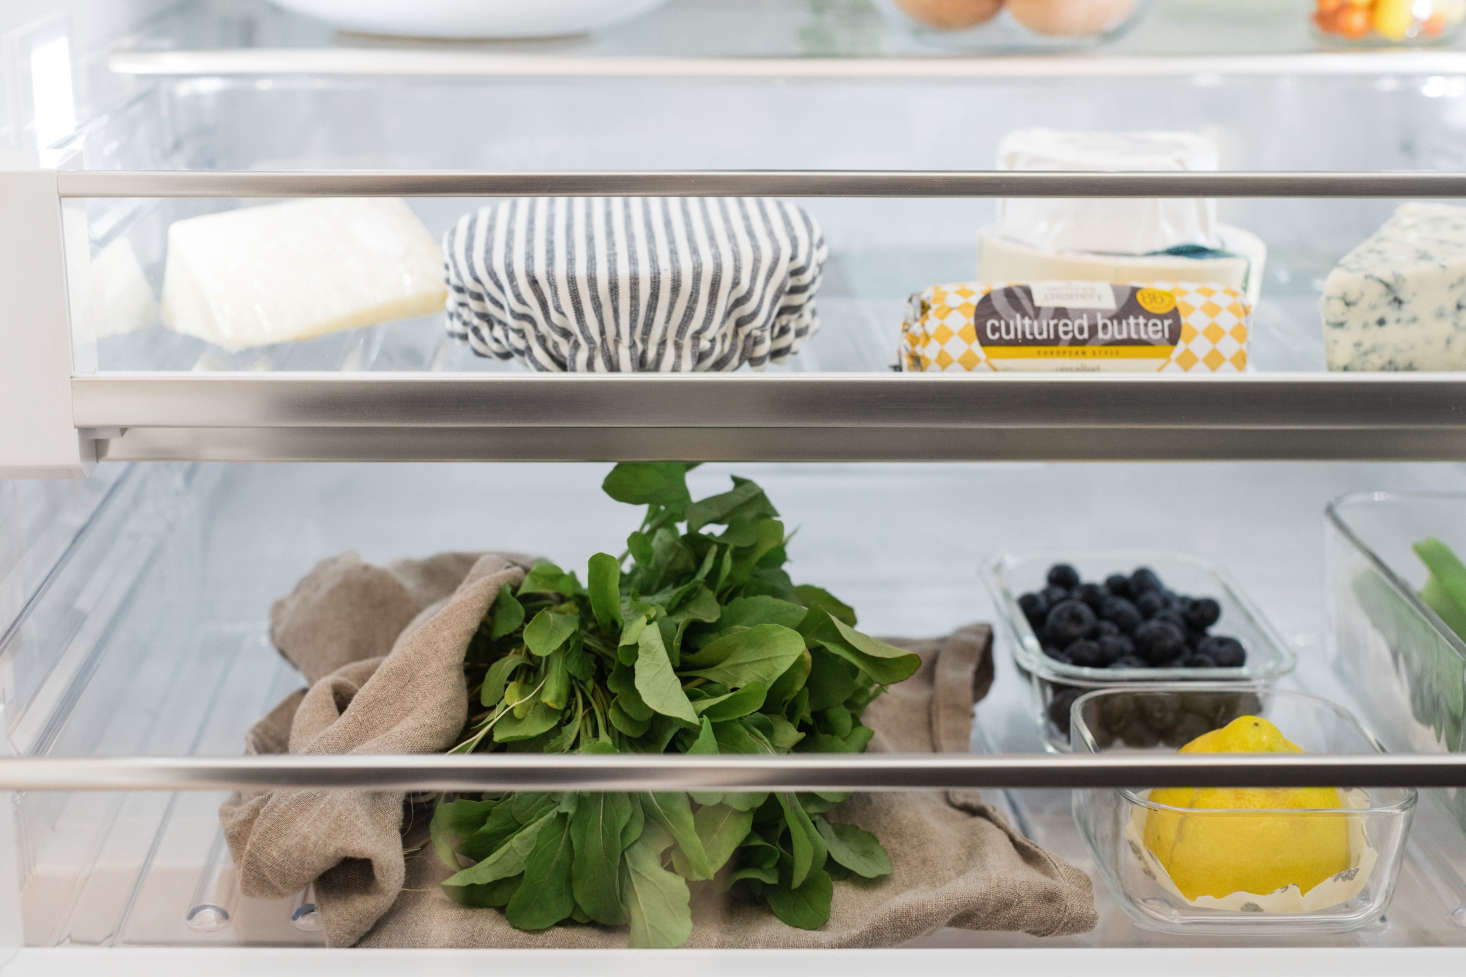 Bosch refrigerators help maintain ideal temperature and humidity levels, prolonging nutrients and flavors. The refrigerator drawers are designed for items that prefer moister conditions, such as fruits and vegetables.